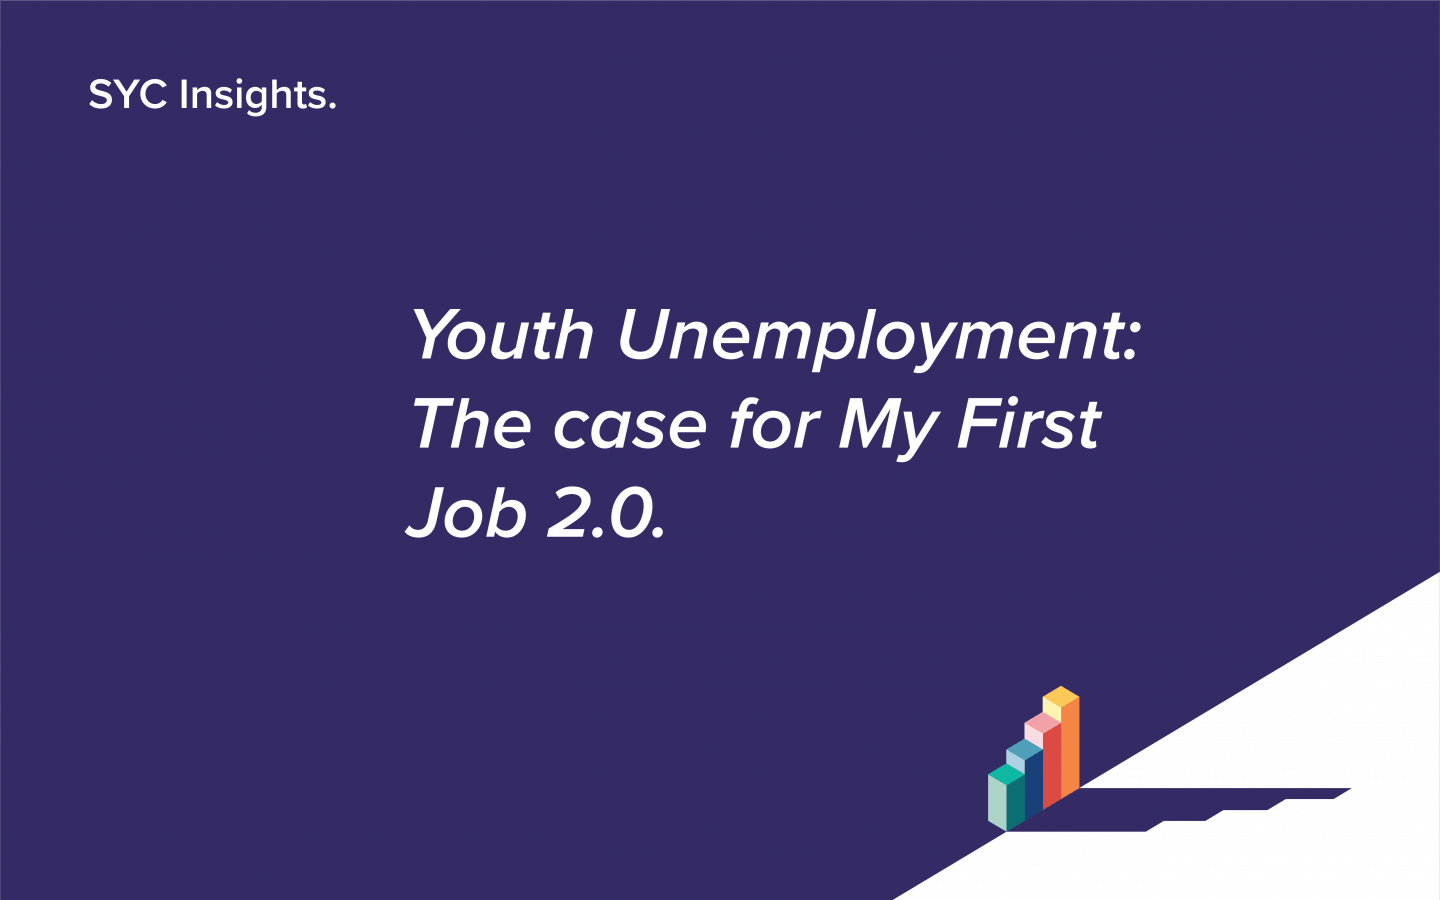 Youth Unemployment: The Case for My First Job 2.0